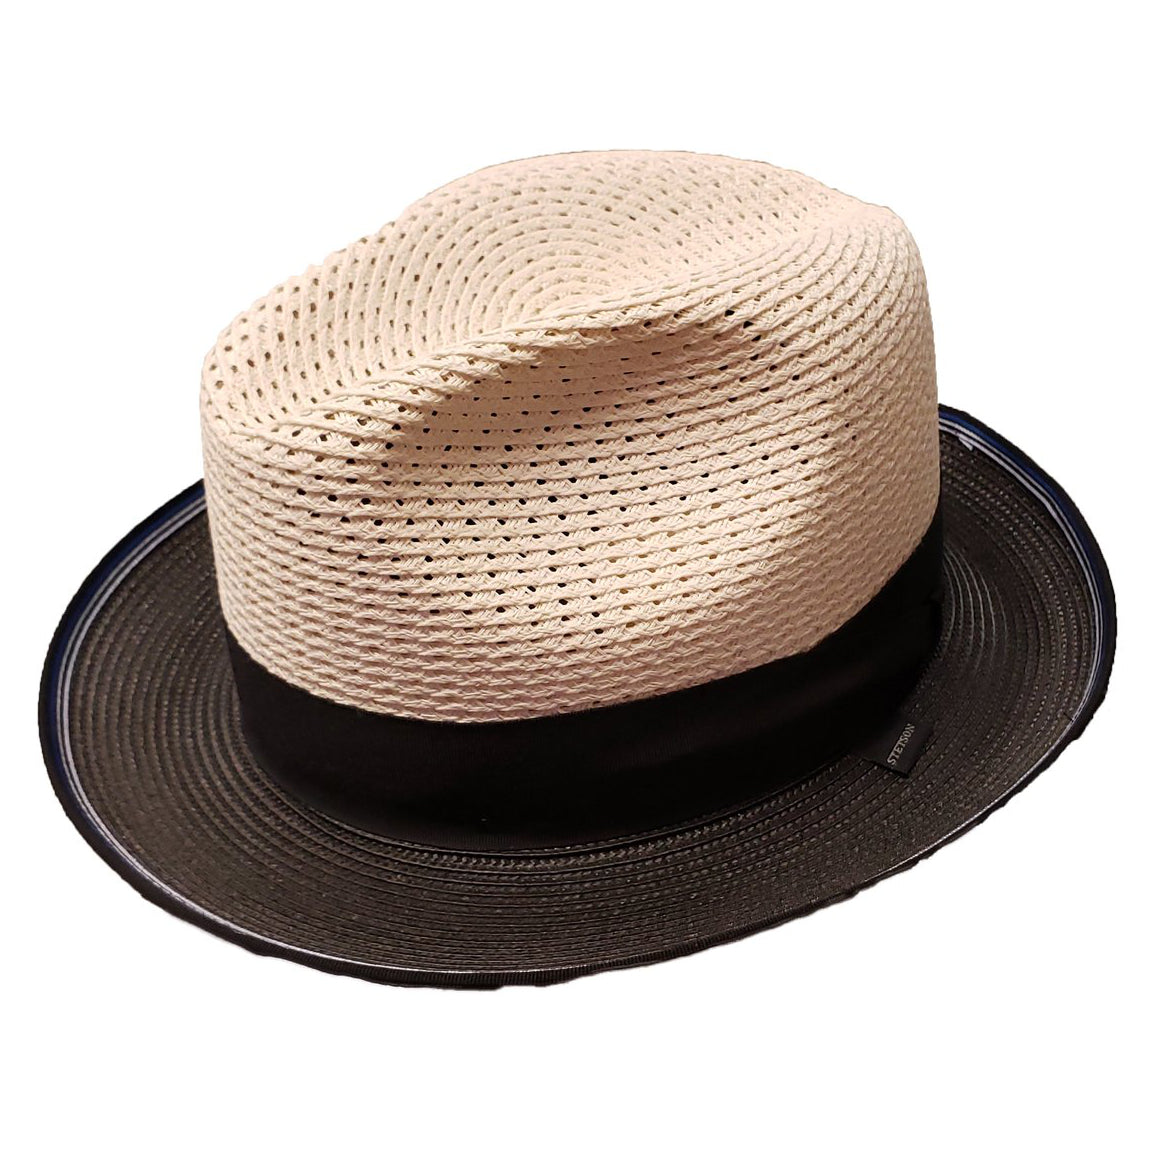 Stetson Gaston Vented Fedora - Beige / Black Hat - Dapperfam.com